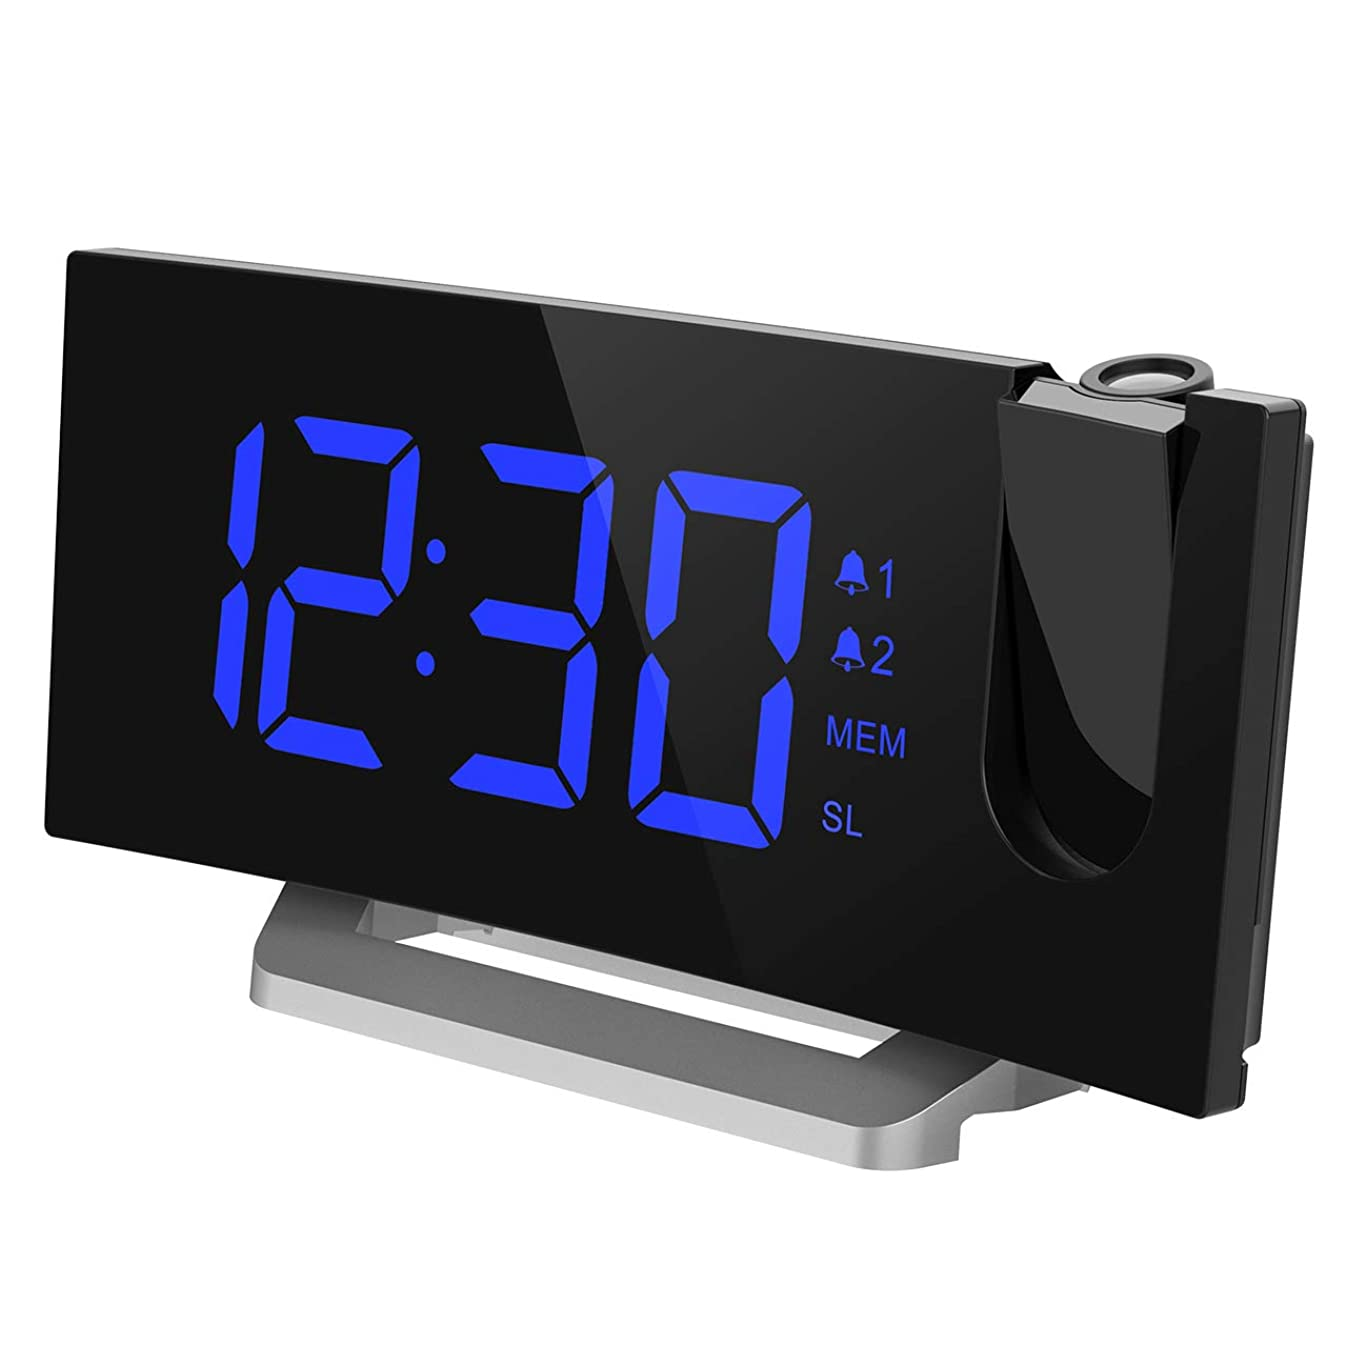 Mpow [Upgraded] Projection Alarm Clock, 5'' LED Curved-Screen Digital Alarm Clock, 4 Dimmer, Dual Alarms, 15 FM Radio, USB Charging Port, Sleep Timer, Snooze Function, Bedroom, Ceiling, Wall